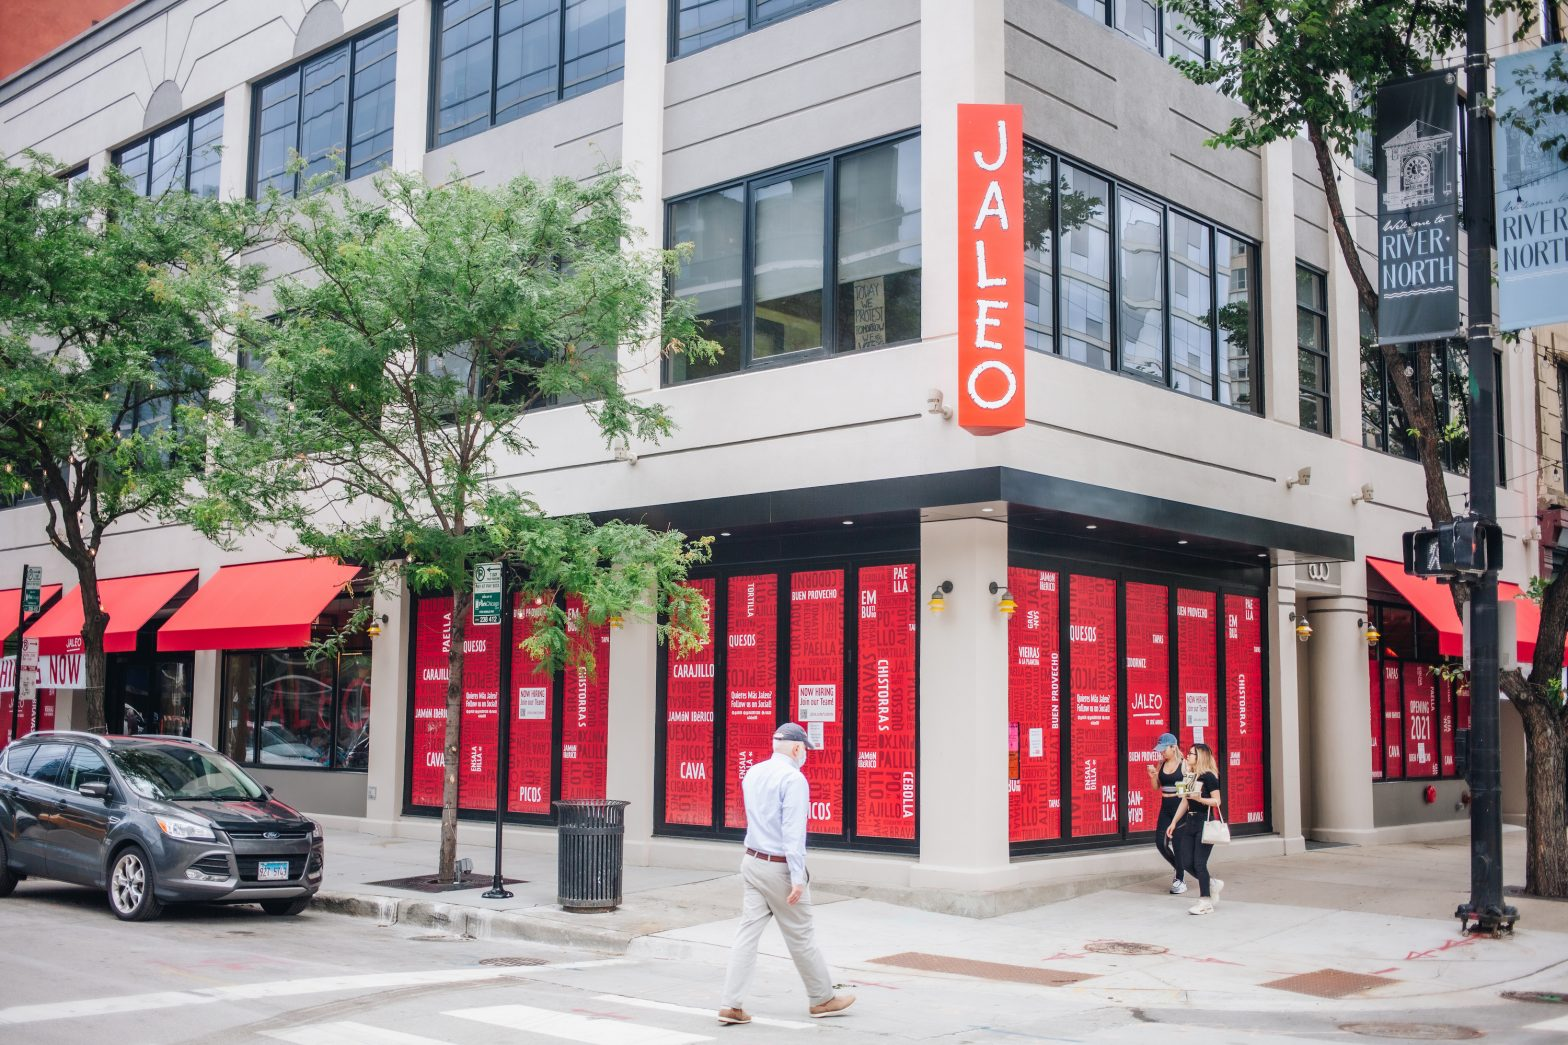 celebrity-chef-jose-andres-is-opening-five-chicago-restaurants-and-bars-this-year